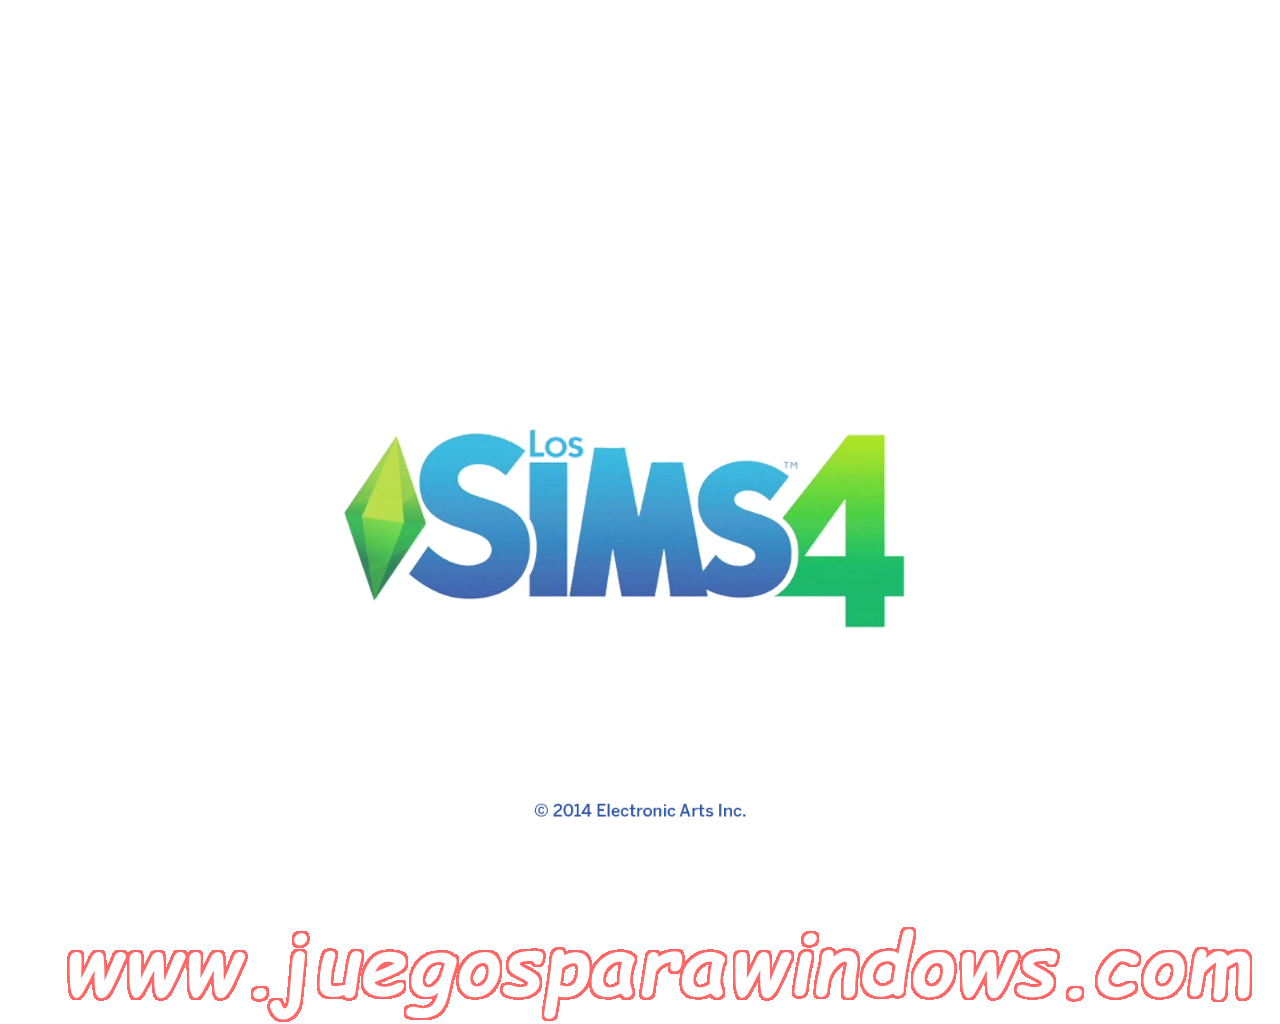 Los Sims 4 Digital Deluxe Edition ESPAÑOL PC Full + Update v1.4.83.1010 Incl DLC (RELOADED) 3